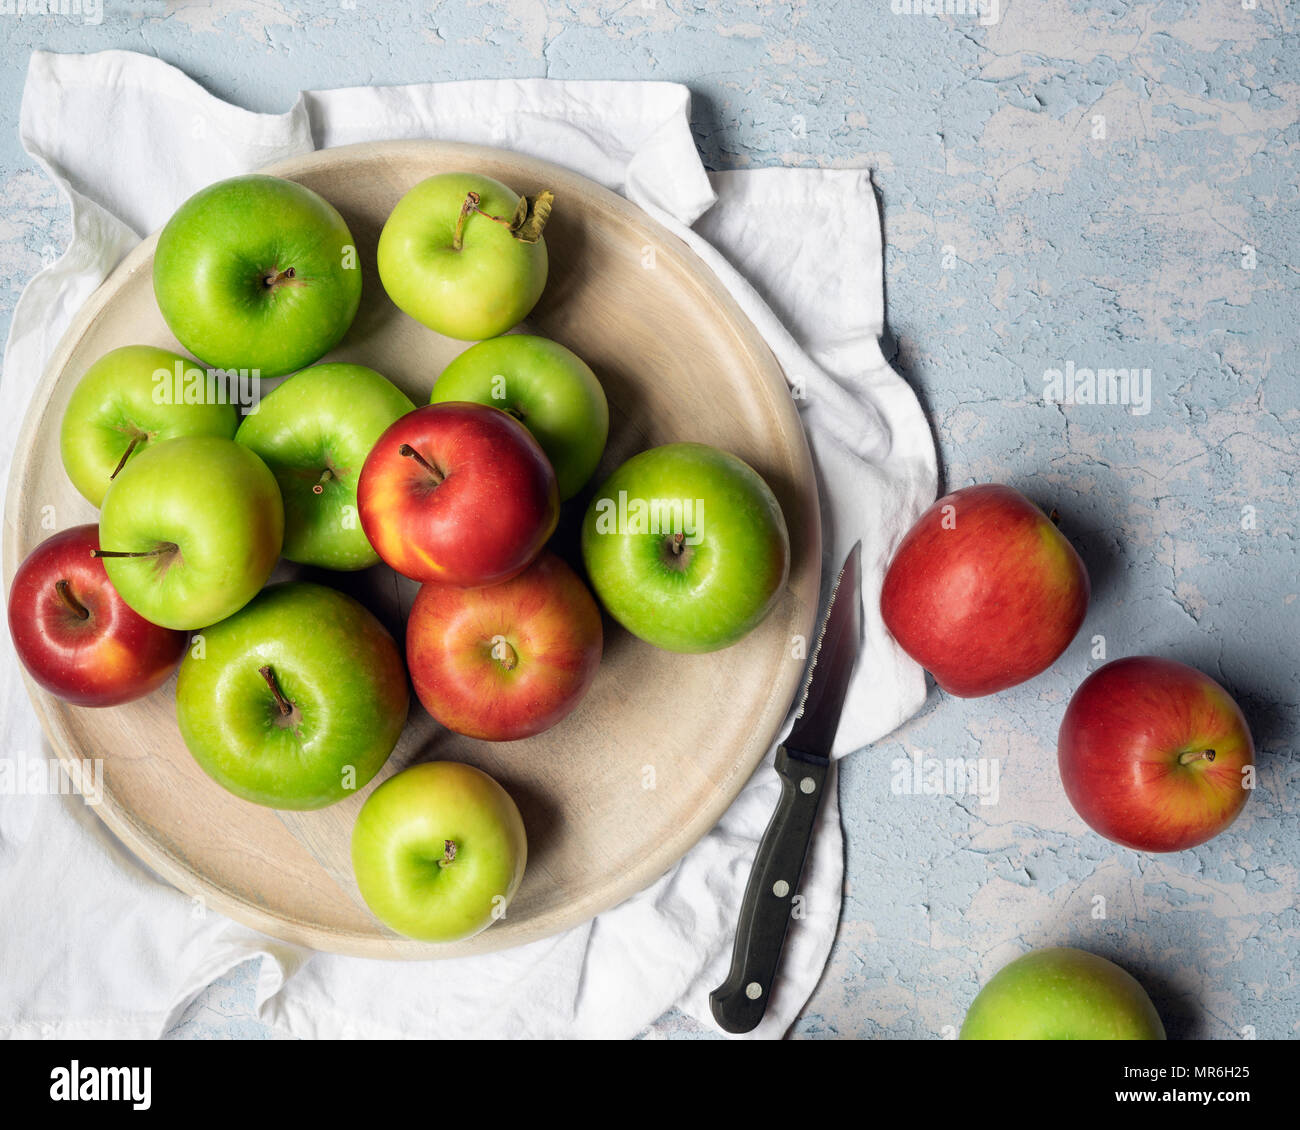 Green cooking apples and red eating apples with a knife against a blue textured background. - Stock Image